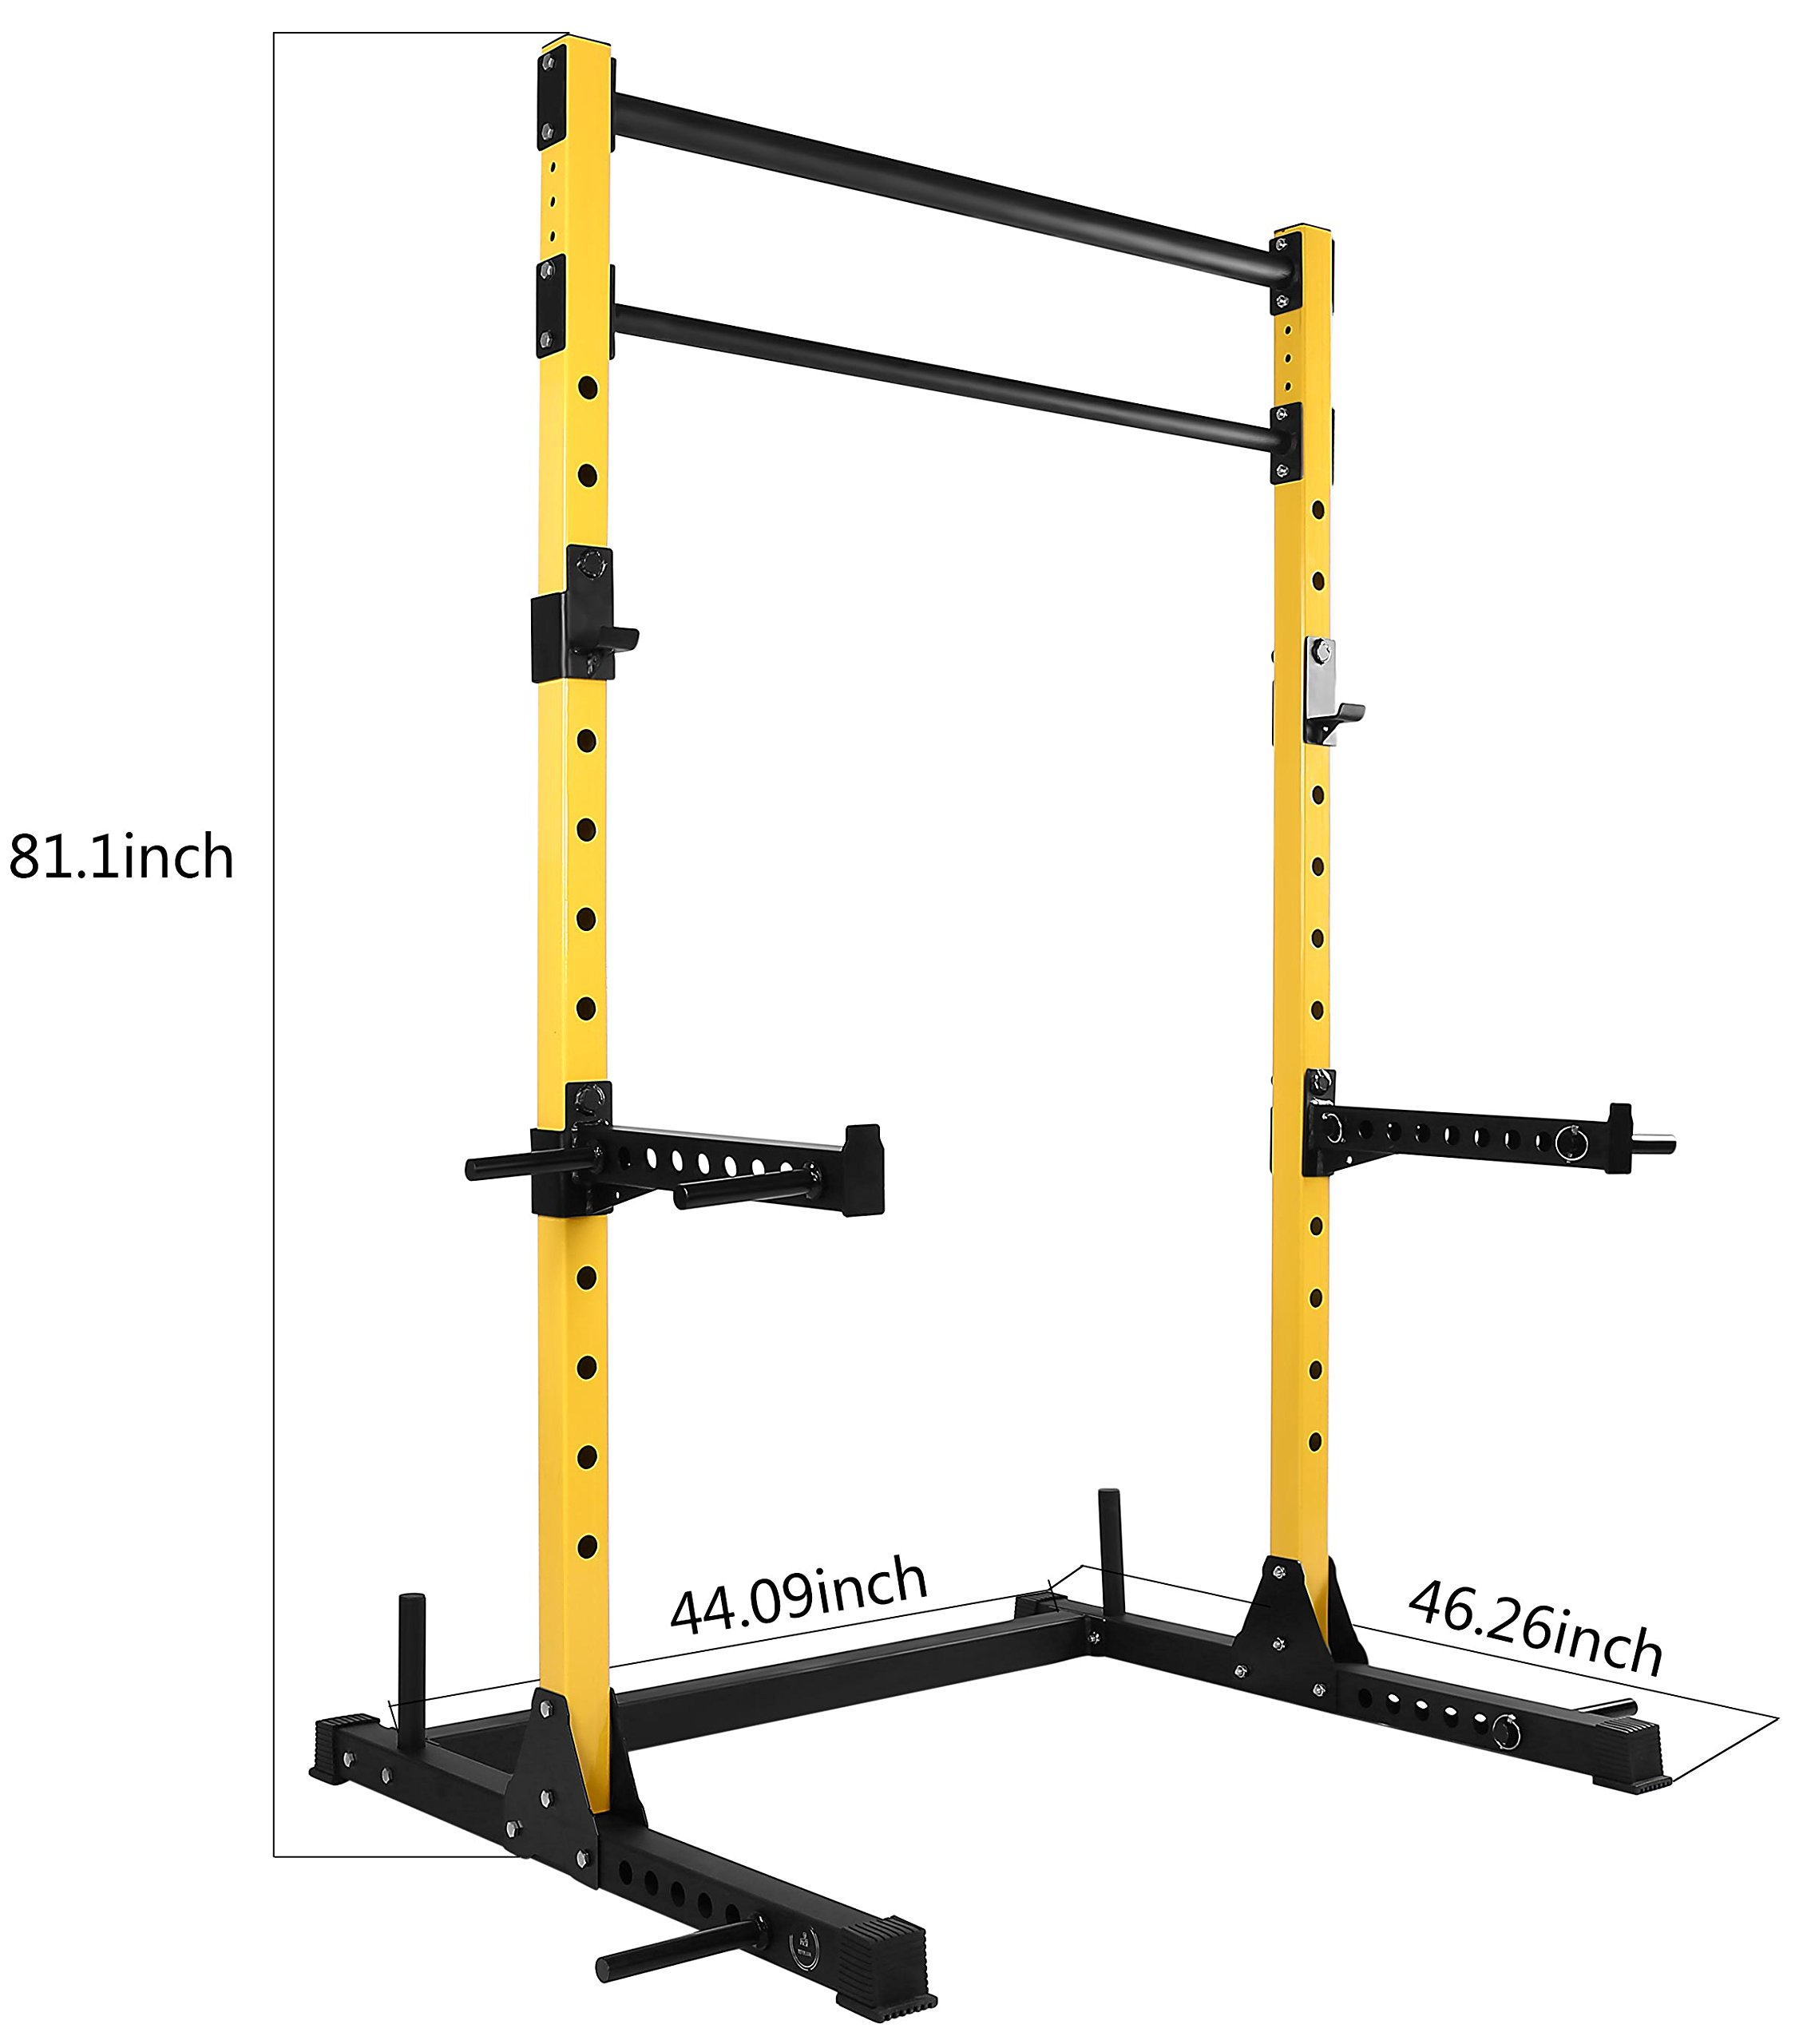 HulkFit Multi-Function Adjustable Power Rack Exercise Squat Stand with J-Hooks, Spotter Arms Dip Bars and Pull Up Bars, 800-Pound Capacity by HulkFit (Image #3)